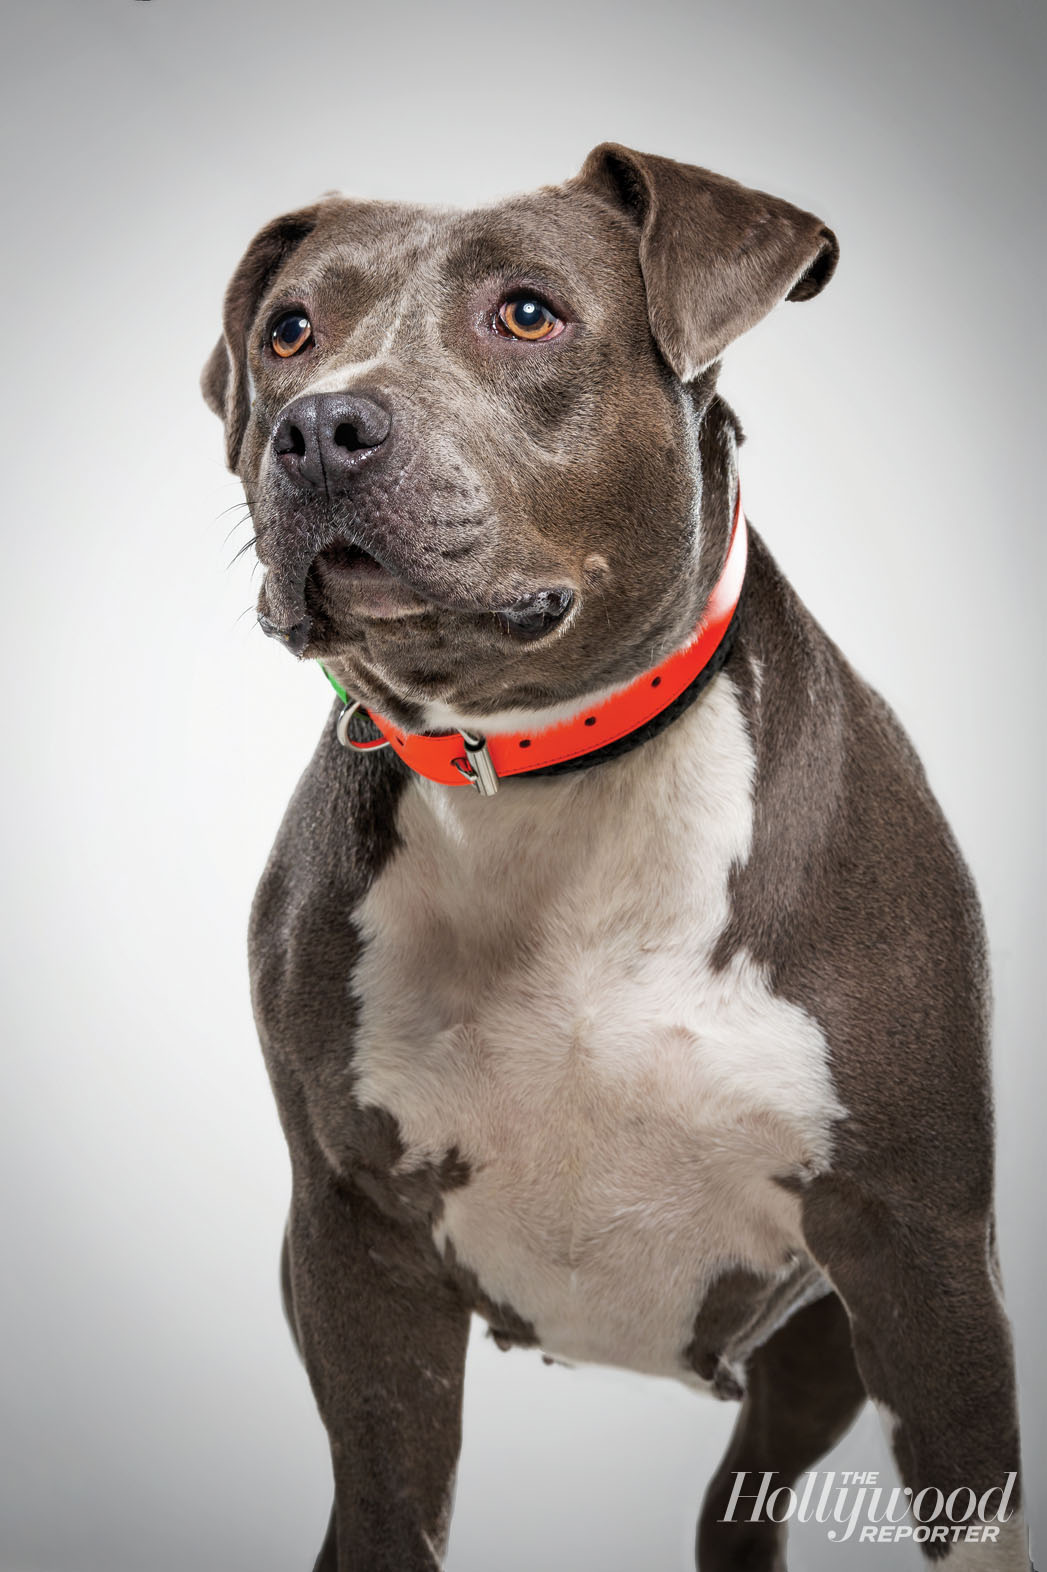 Electra: American Staffordshire terrier (pit bull), 3 years old